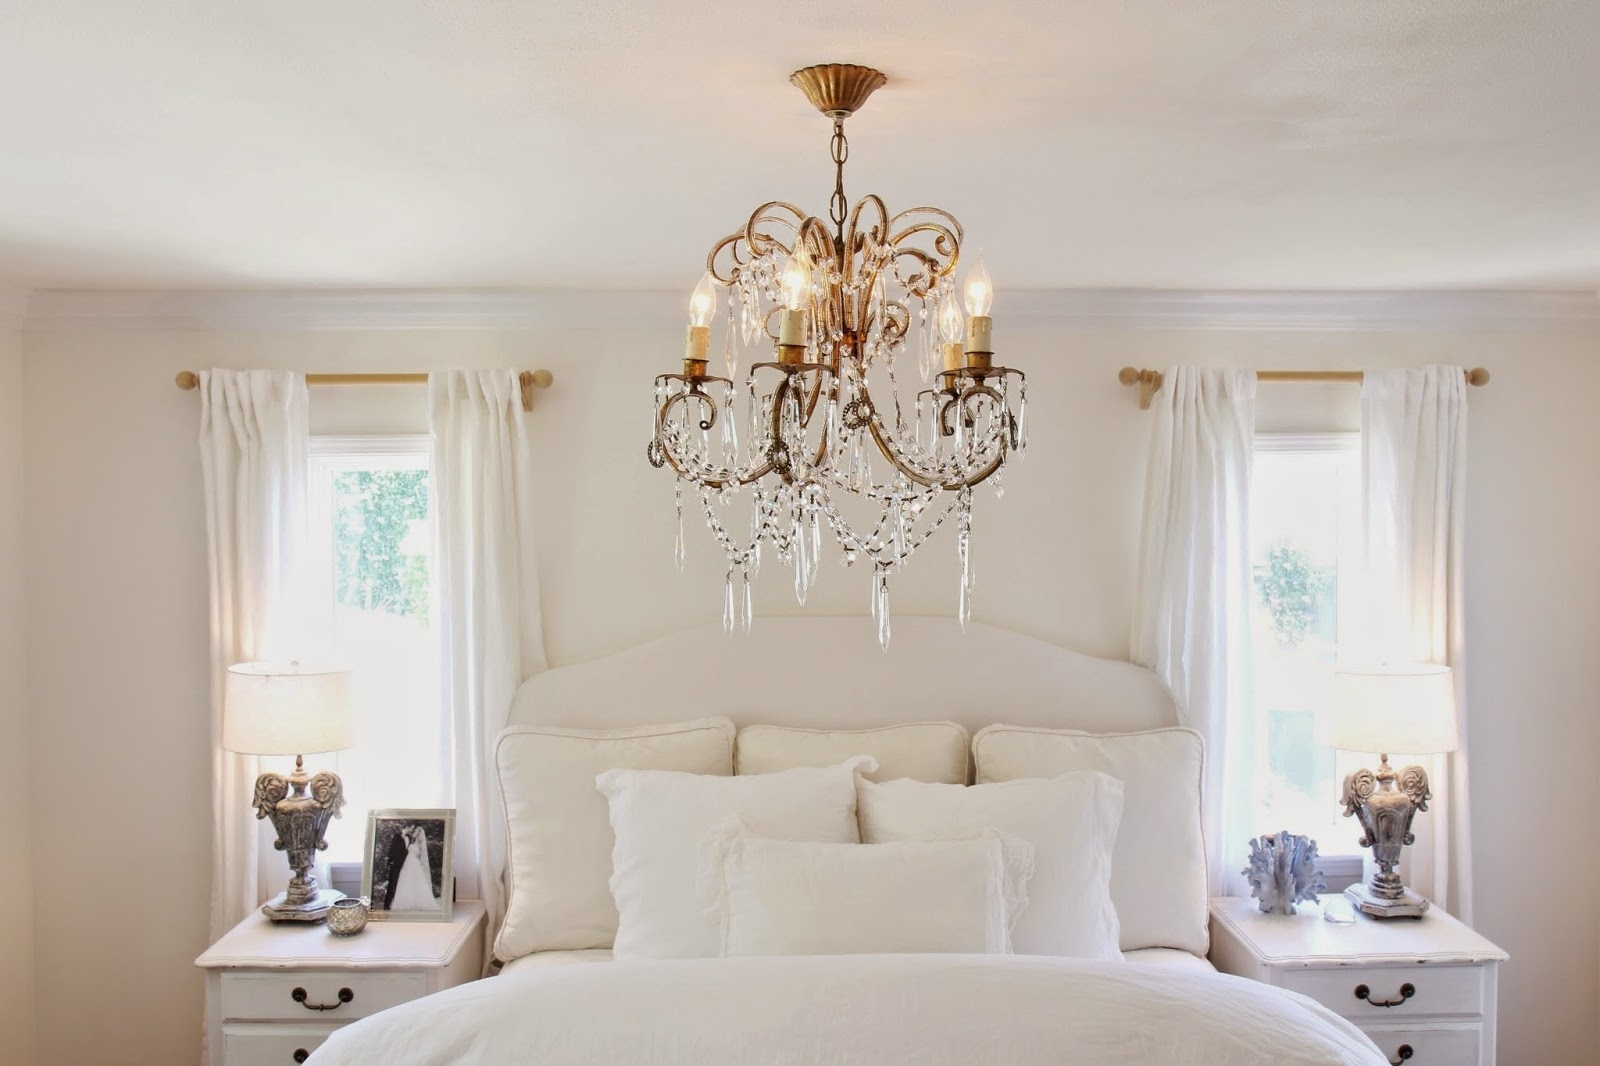 Most Up To Date Nora's Nest: A Chandelier For The Master Bedroom Inside Bedroom Chandeliers (View 12 of 15)